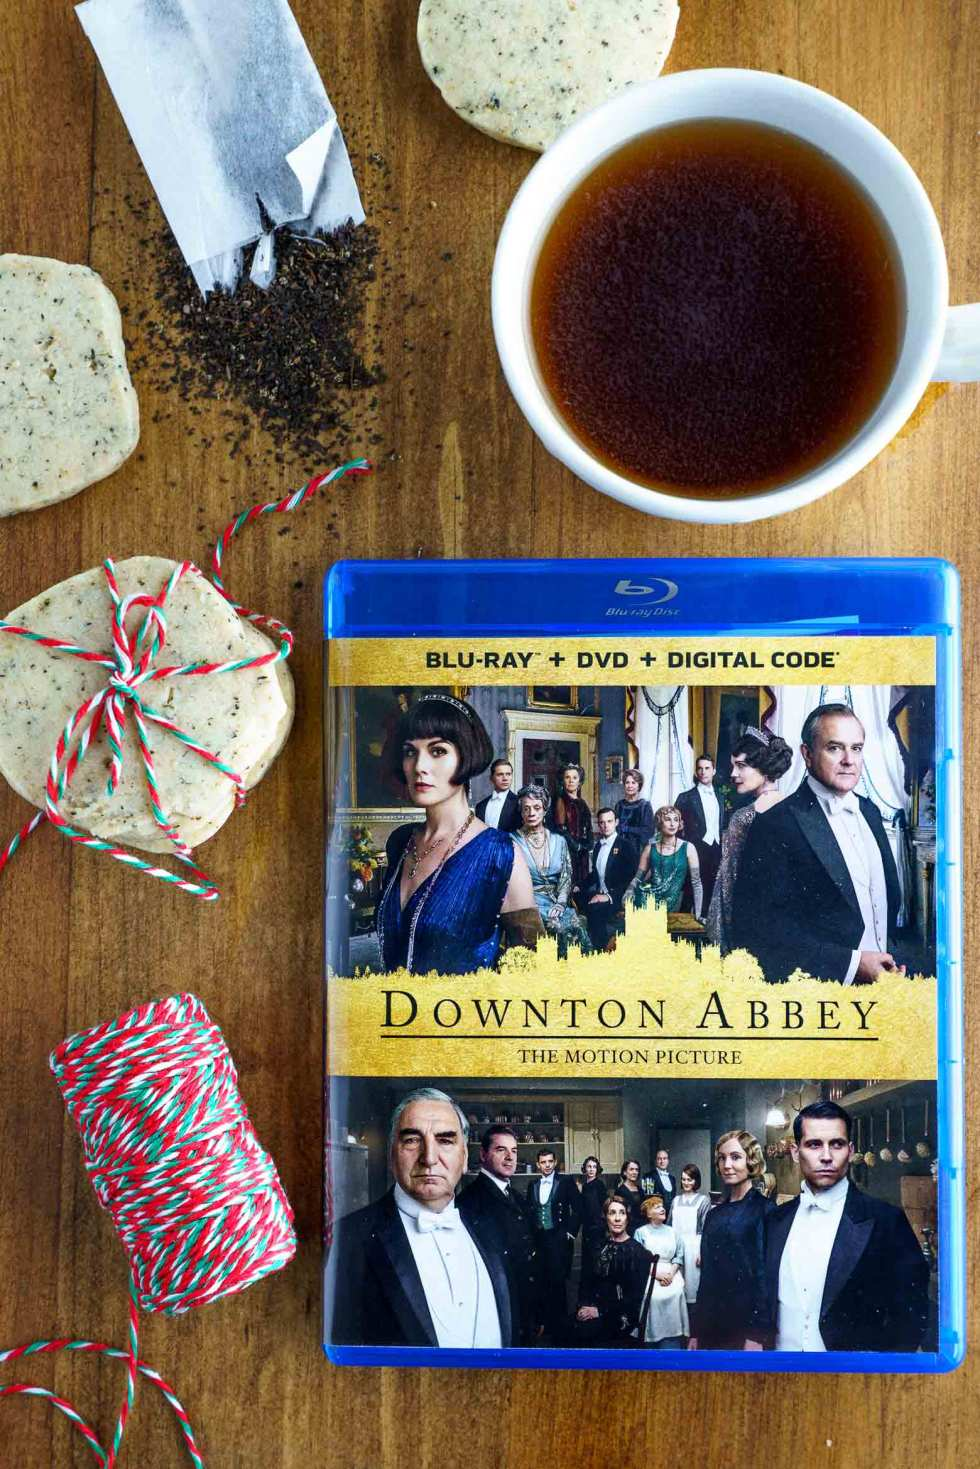 Downton Abbey DVD flat lay with teacup, loose tea and biscuits